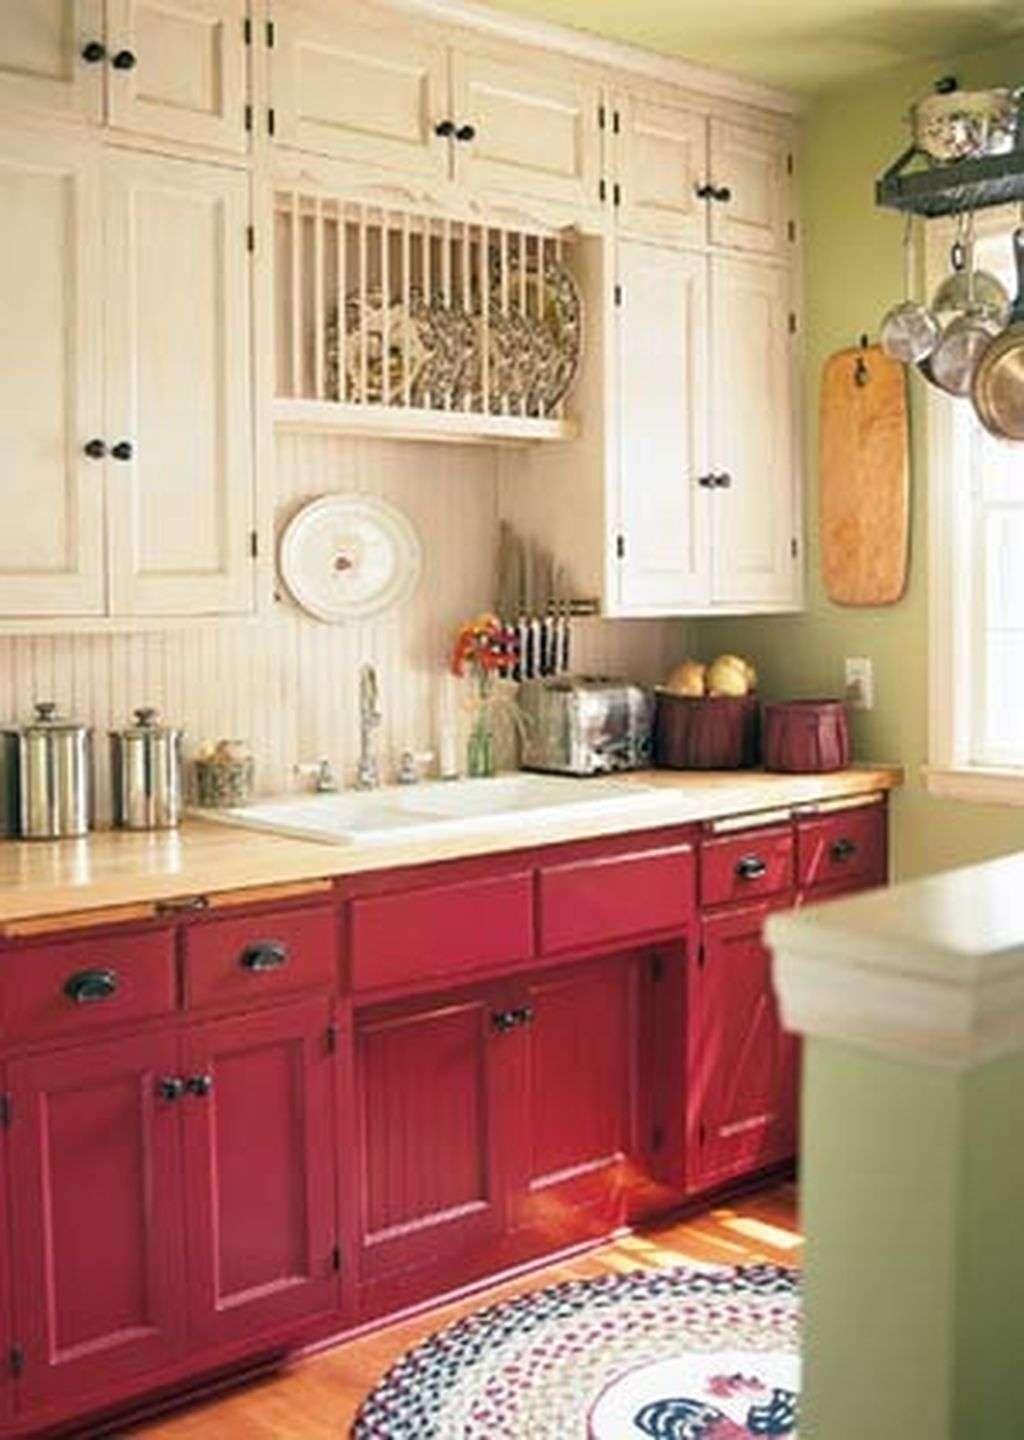 Cool French Country Kitchen Ideas On A Budget 22 Red Kitchen Cabinets Kitchen Cabinet Colors Painting Kitchen Cabinets